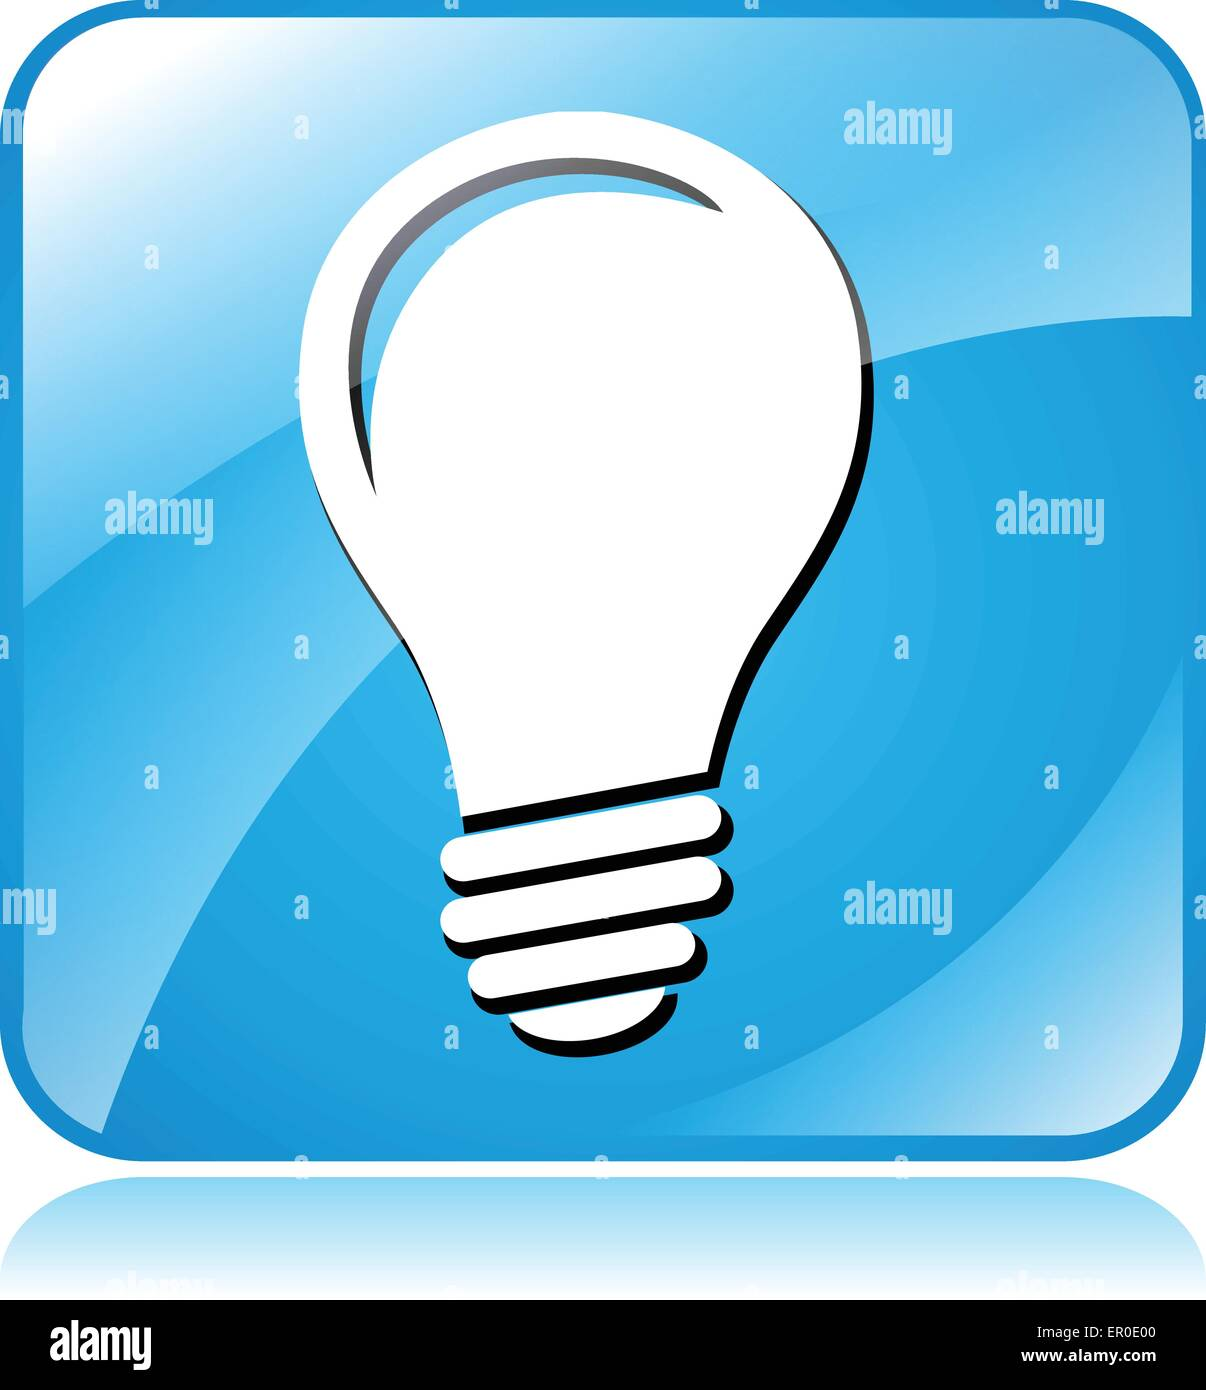 vector square blue icon lighting bulb. illustration of blue square design icon for light bulb vector lighting c